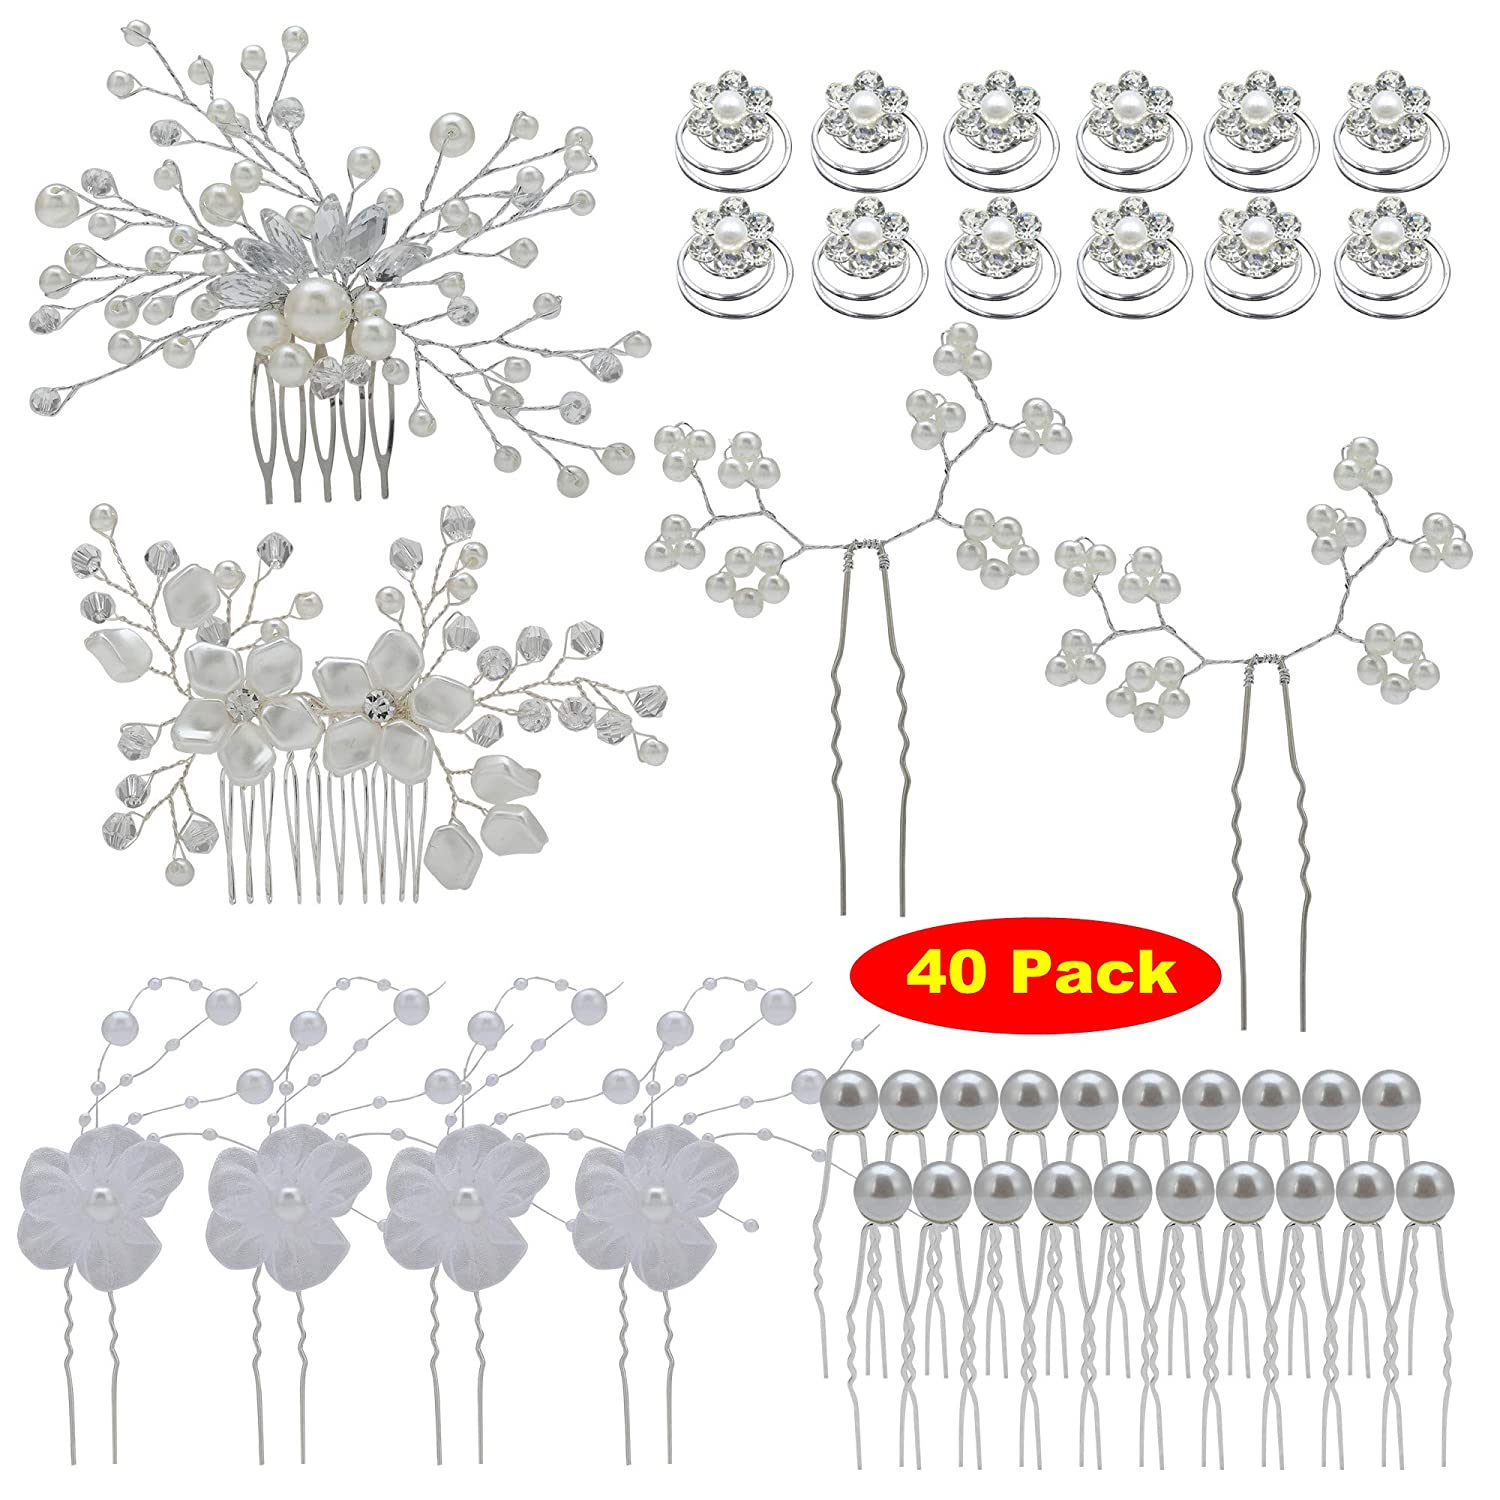 inSowni 40 Pack Bridal Wedding Hair Side Combs+U Shaped Hair Pins Clips Pieces Jewelry Rhinestone Pearl Flower Accessories for Women Brides Girls